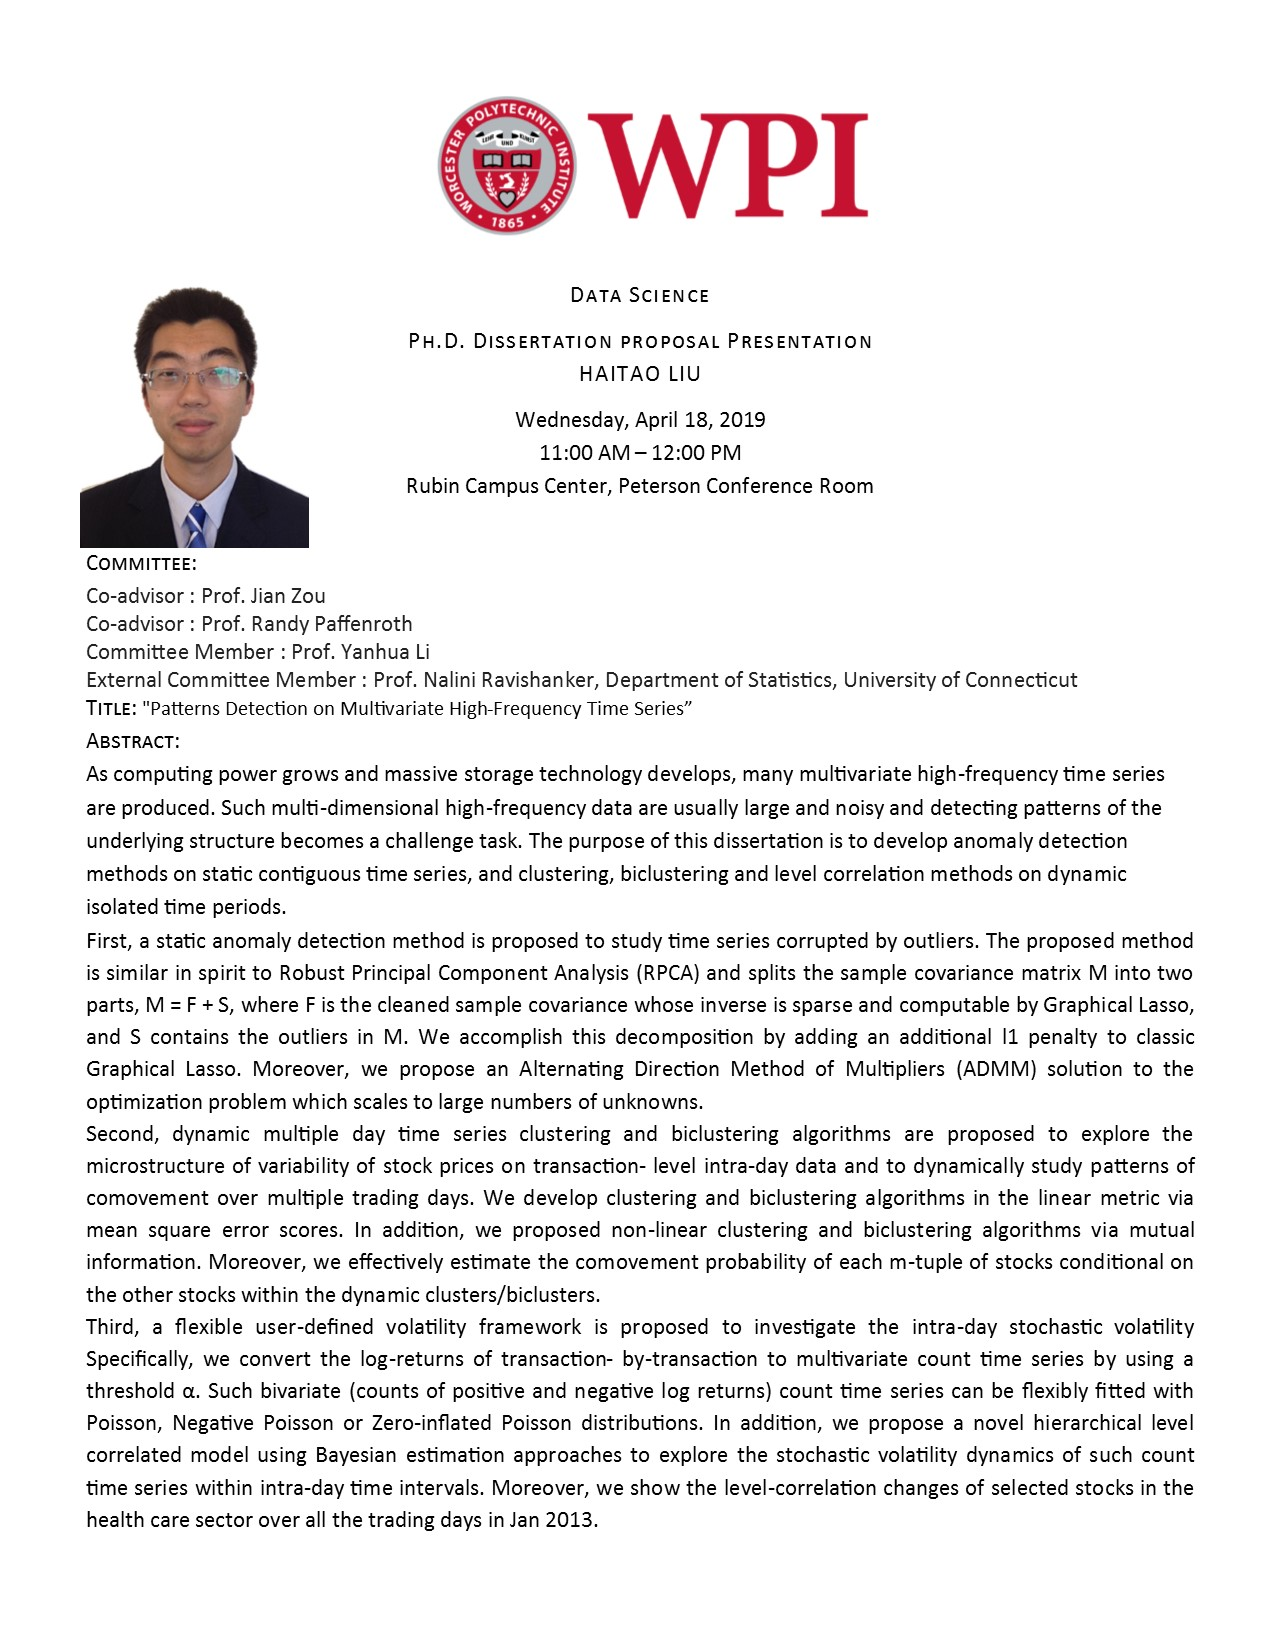 Haitao Liu Ph.D. Dissertation Proposal alt